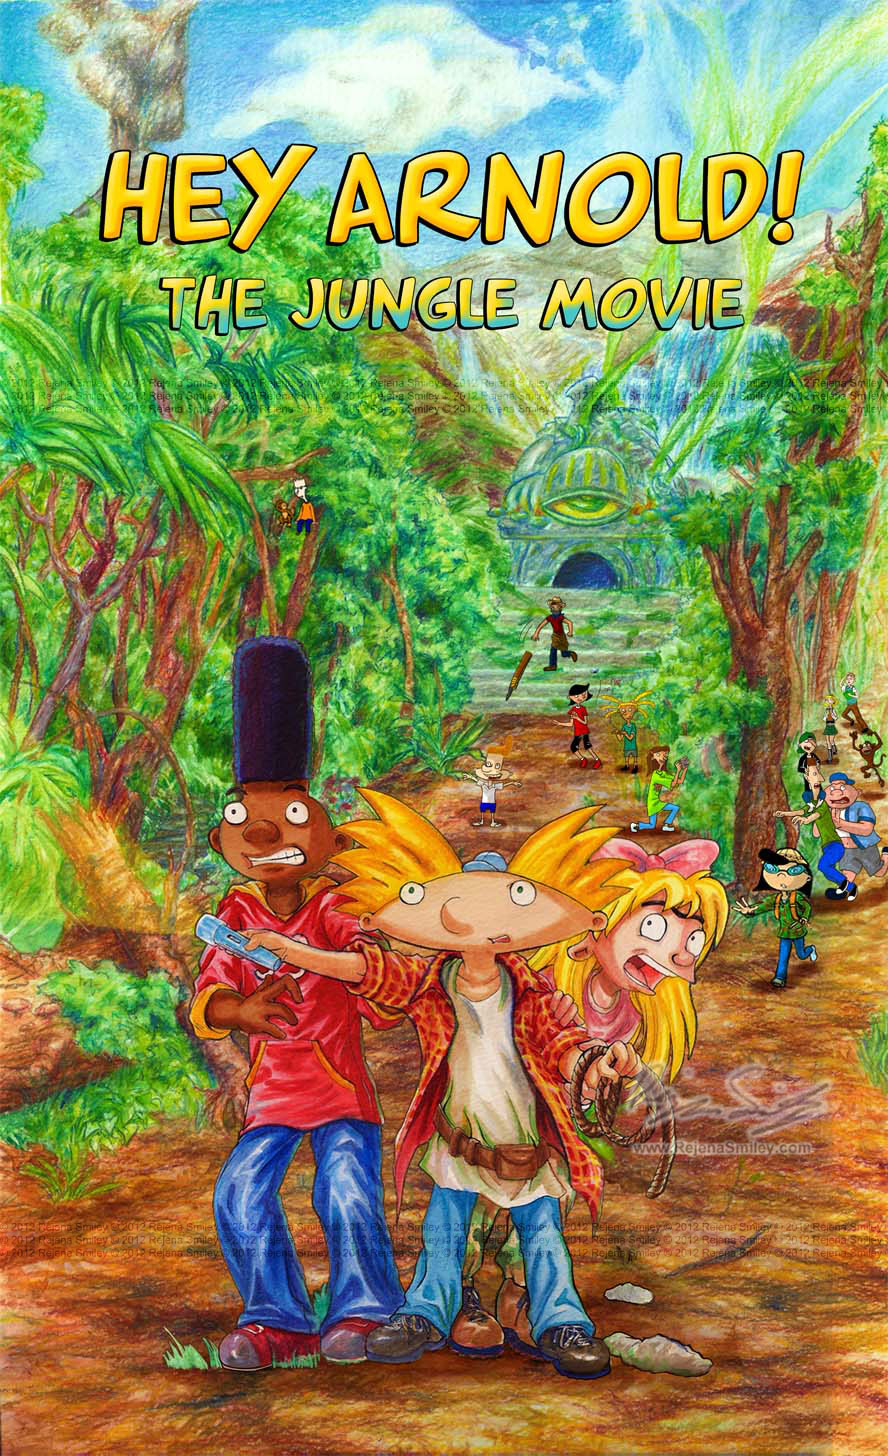 Hey Arnold- The Jungle Movie 'cover' by genaminna